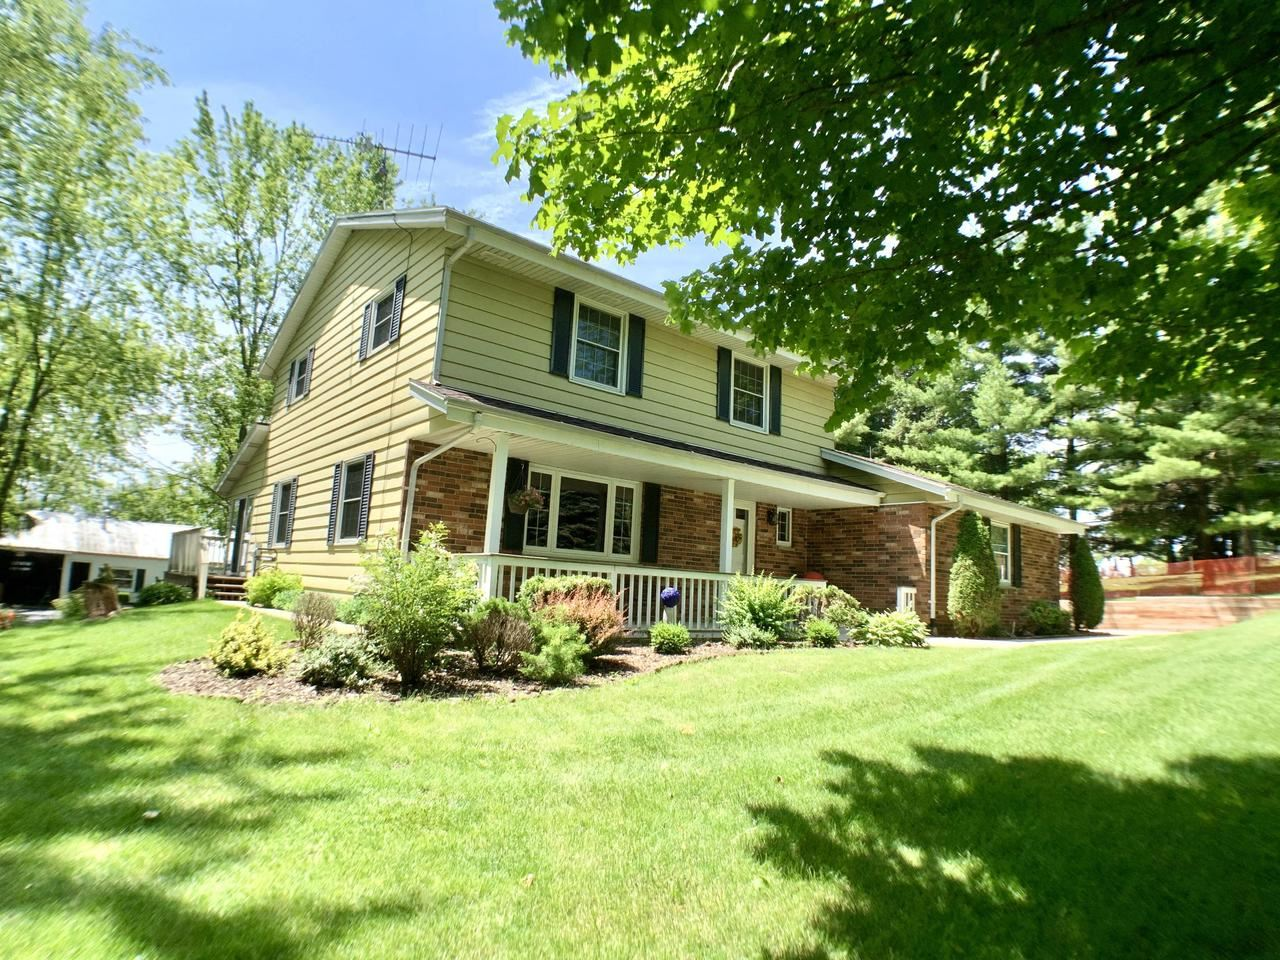 S69W22965 National Ave, Big Bend, WI 53103 - MLS#: 1696956